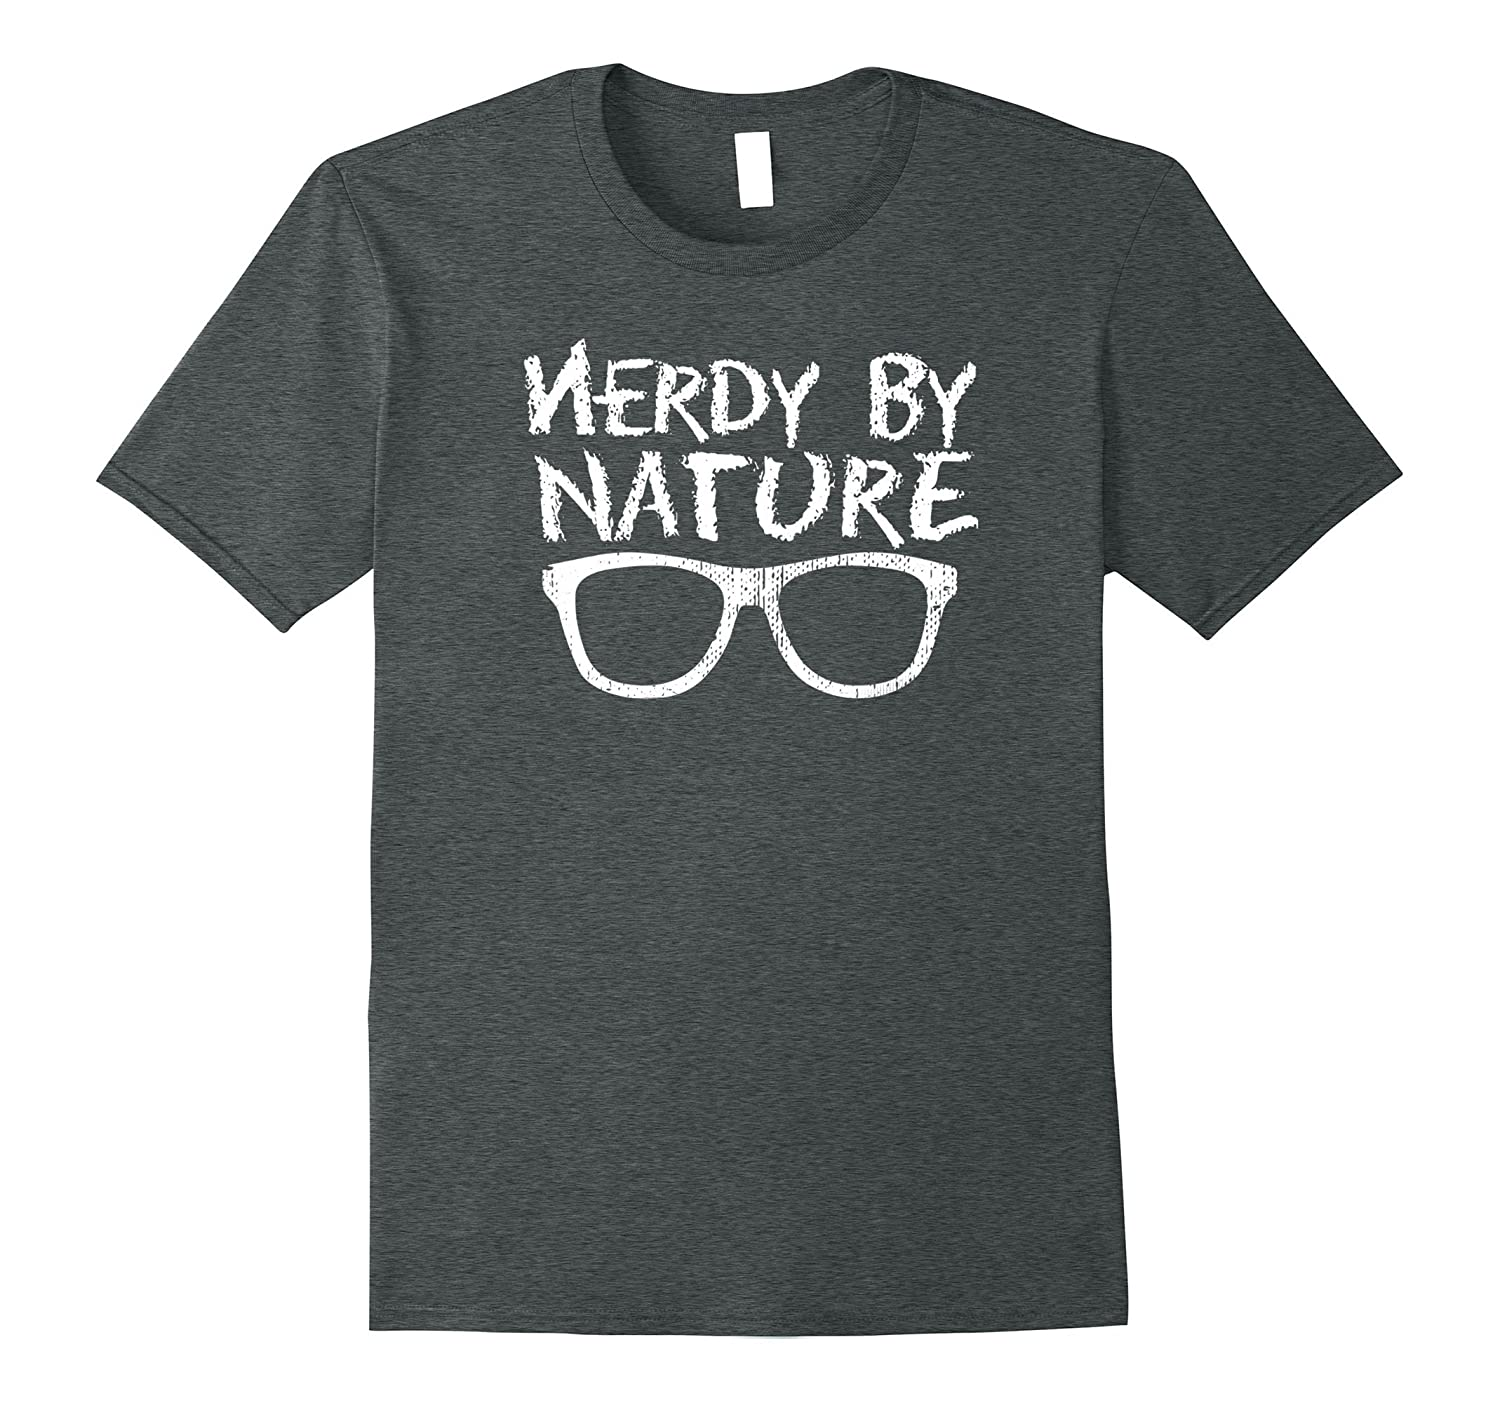 d0d189fb Cool Nerd Nerdy By Nature T-Shirt – Geek Glasses Tee-RT – Rateeshirt